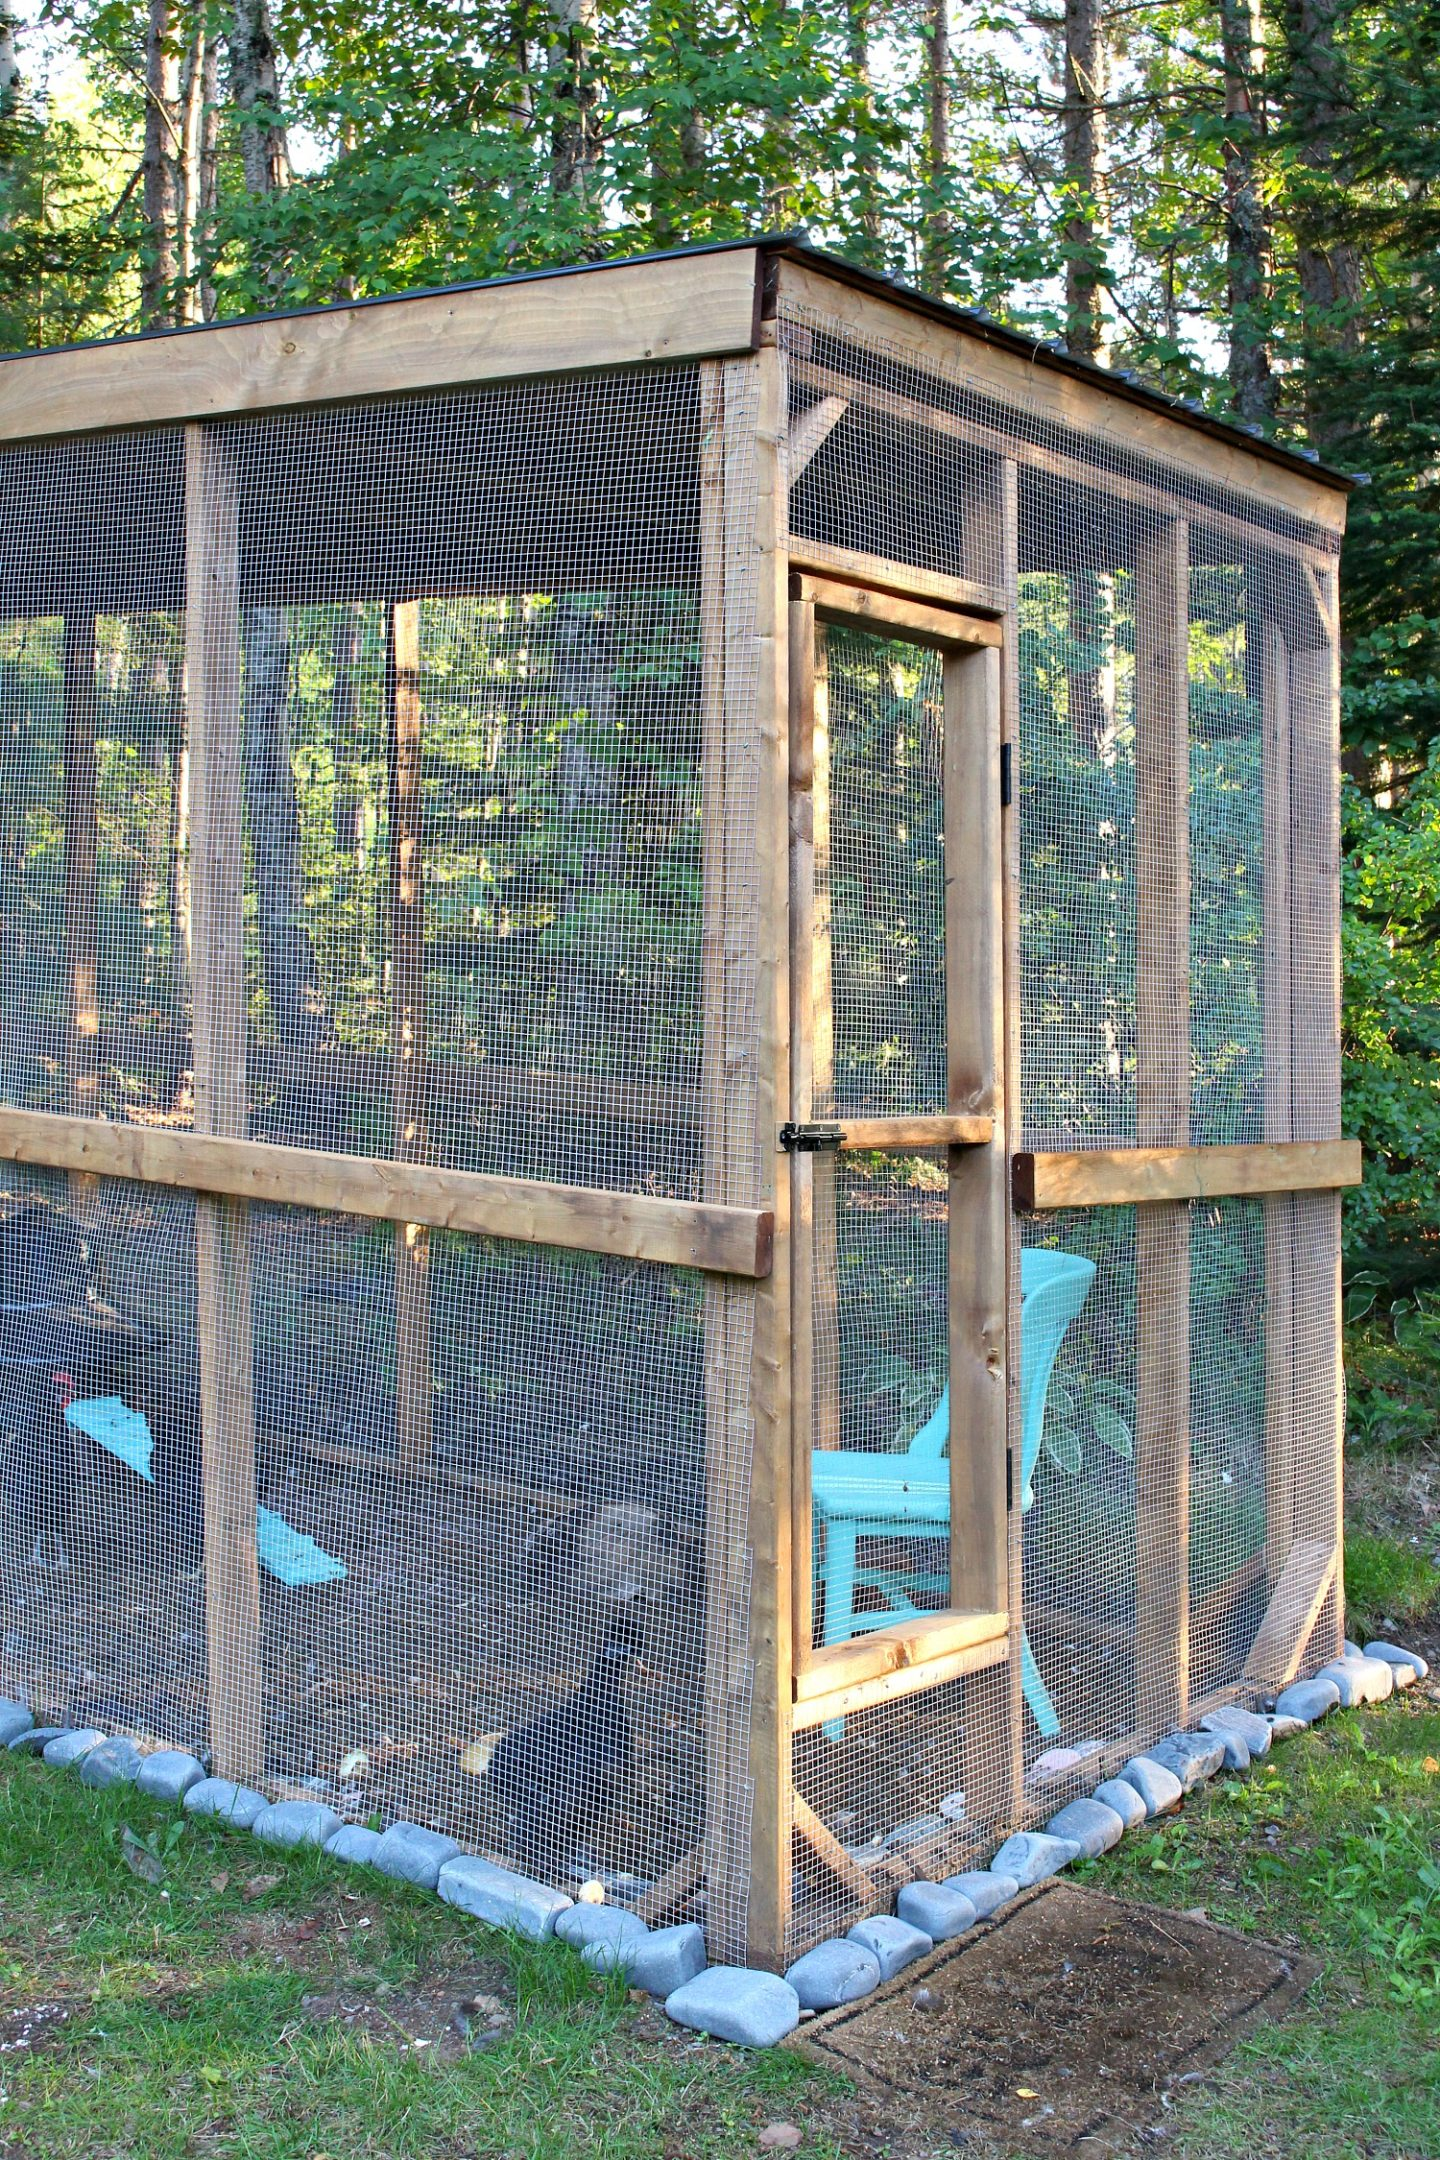 Predator Proof Chicken Run Design